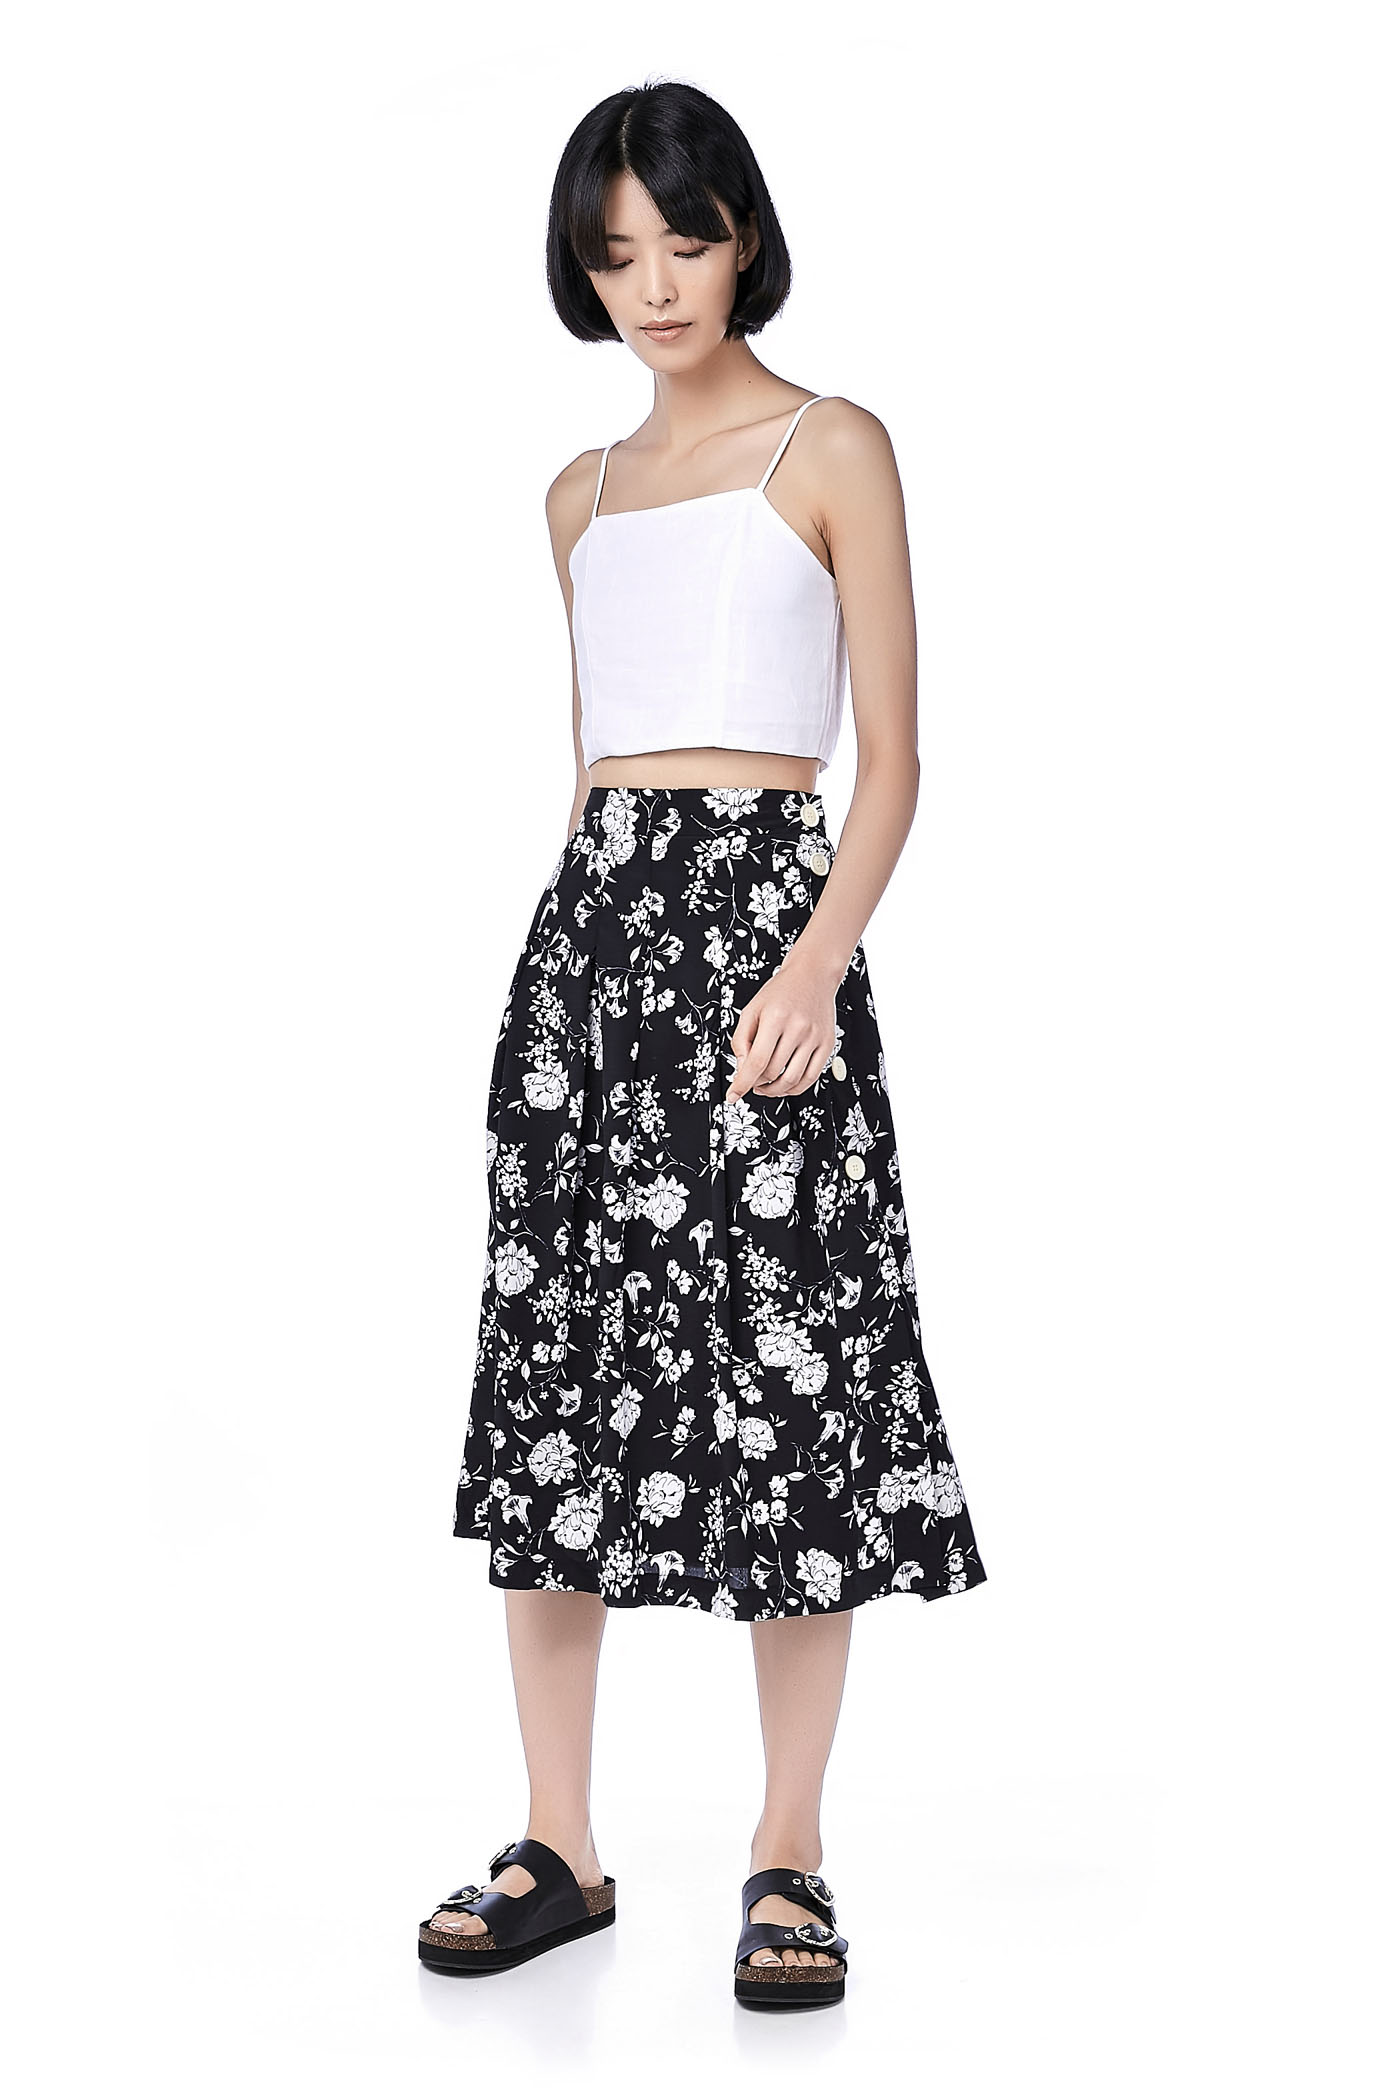 Daluie Swing Skirt